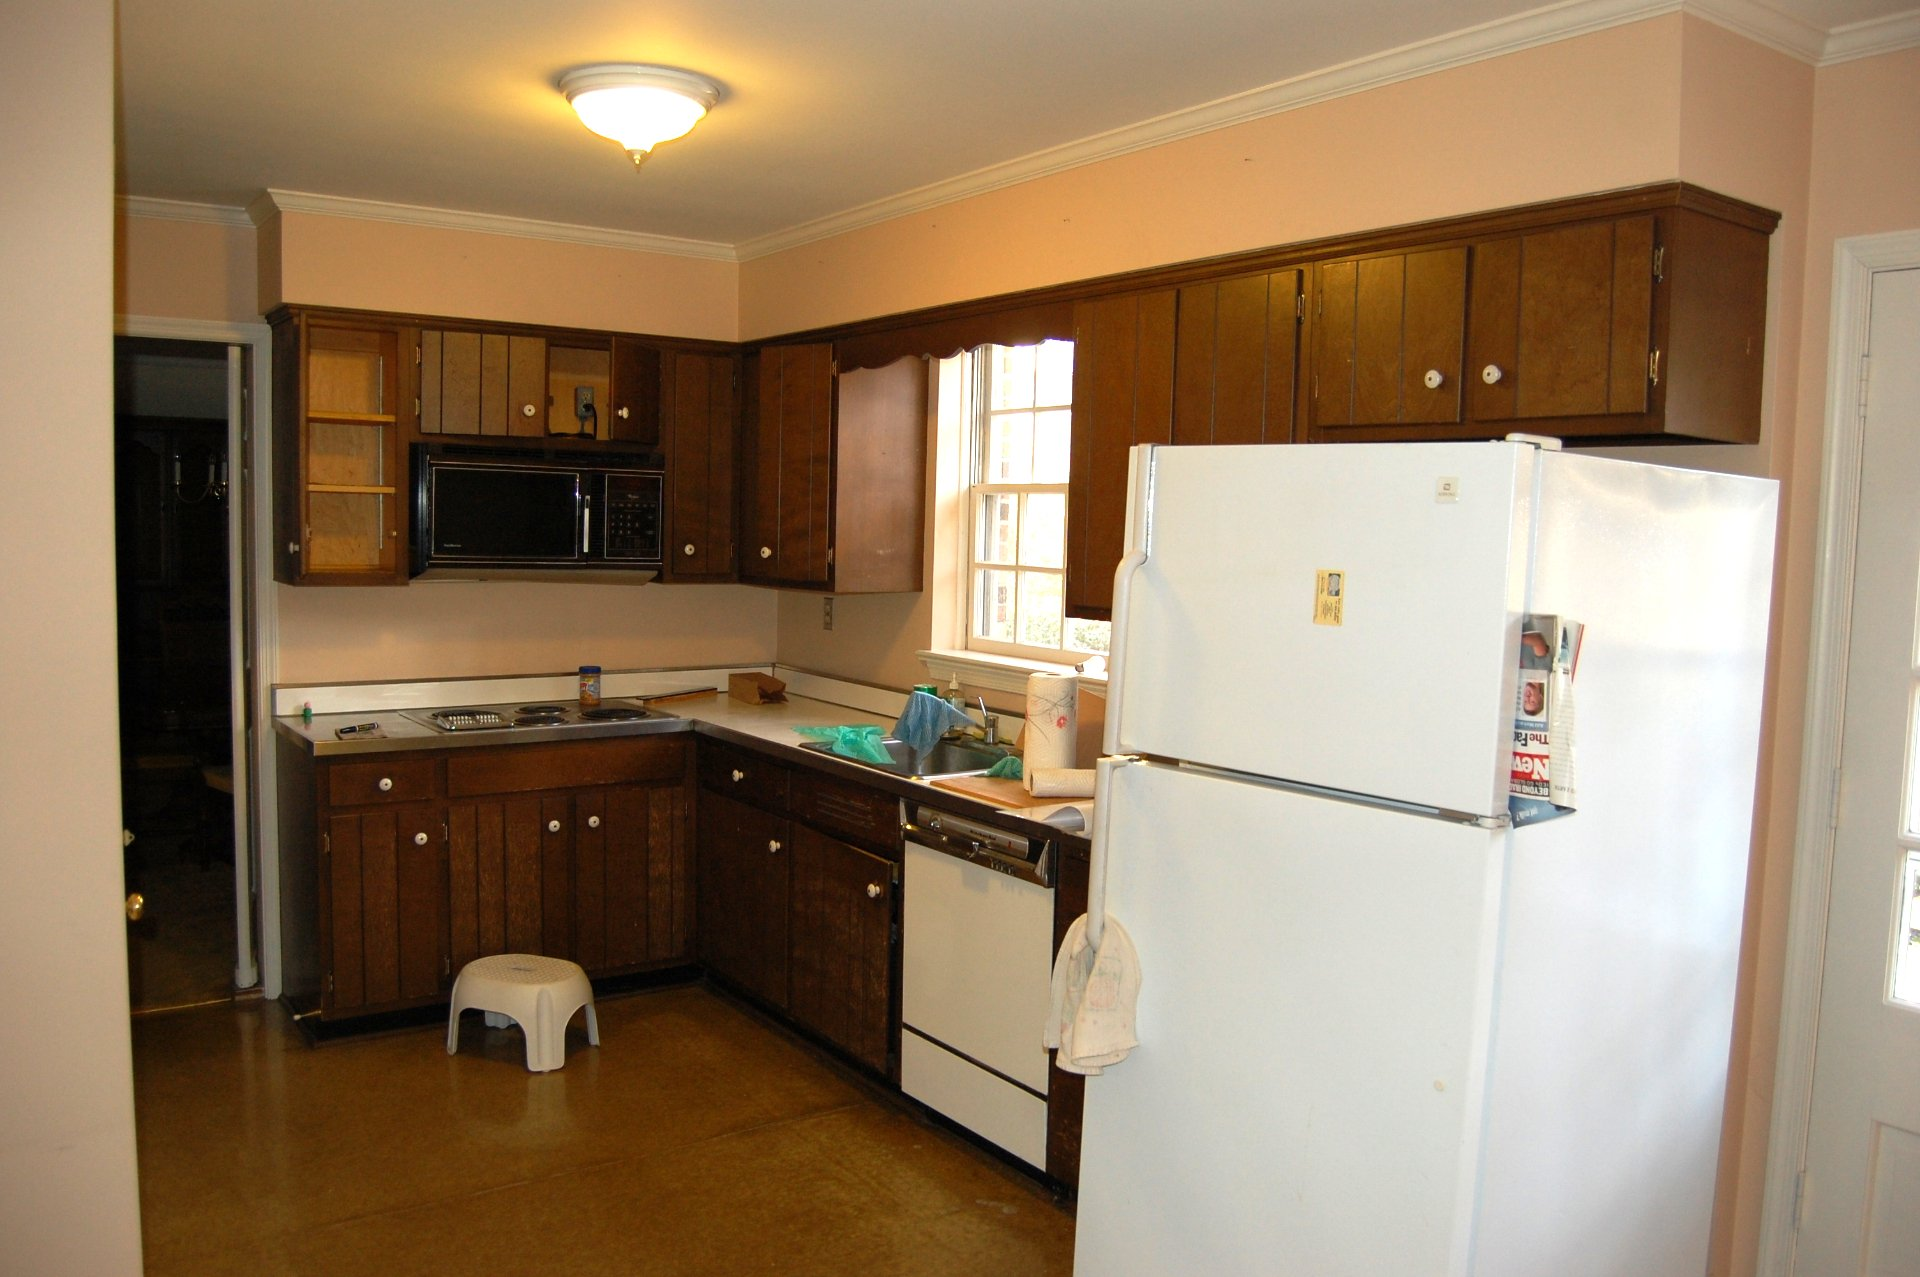 kitchen remodel before A